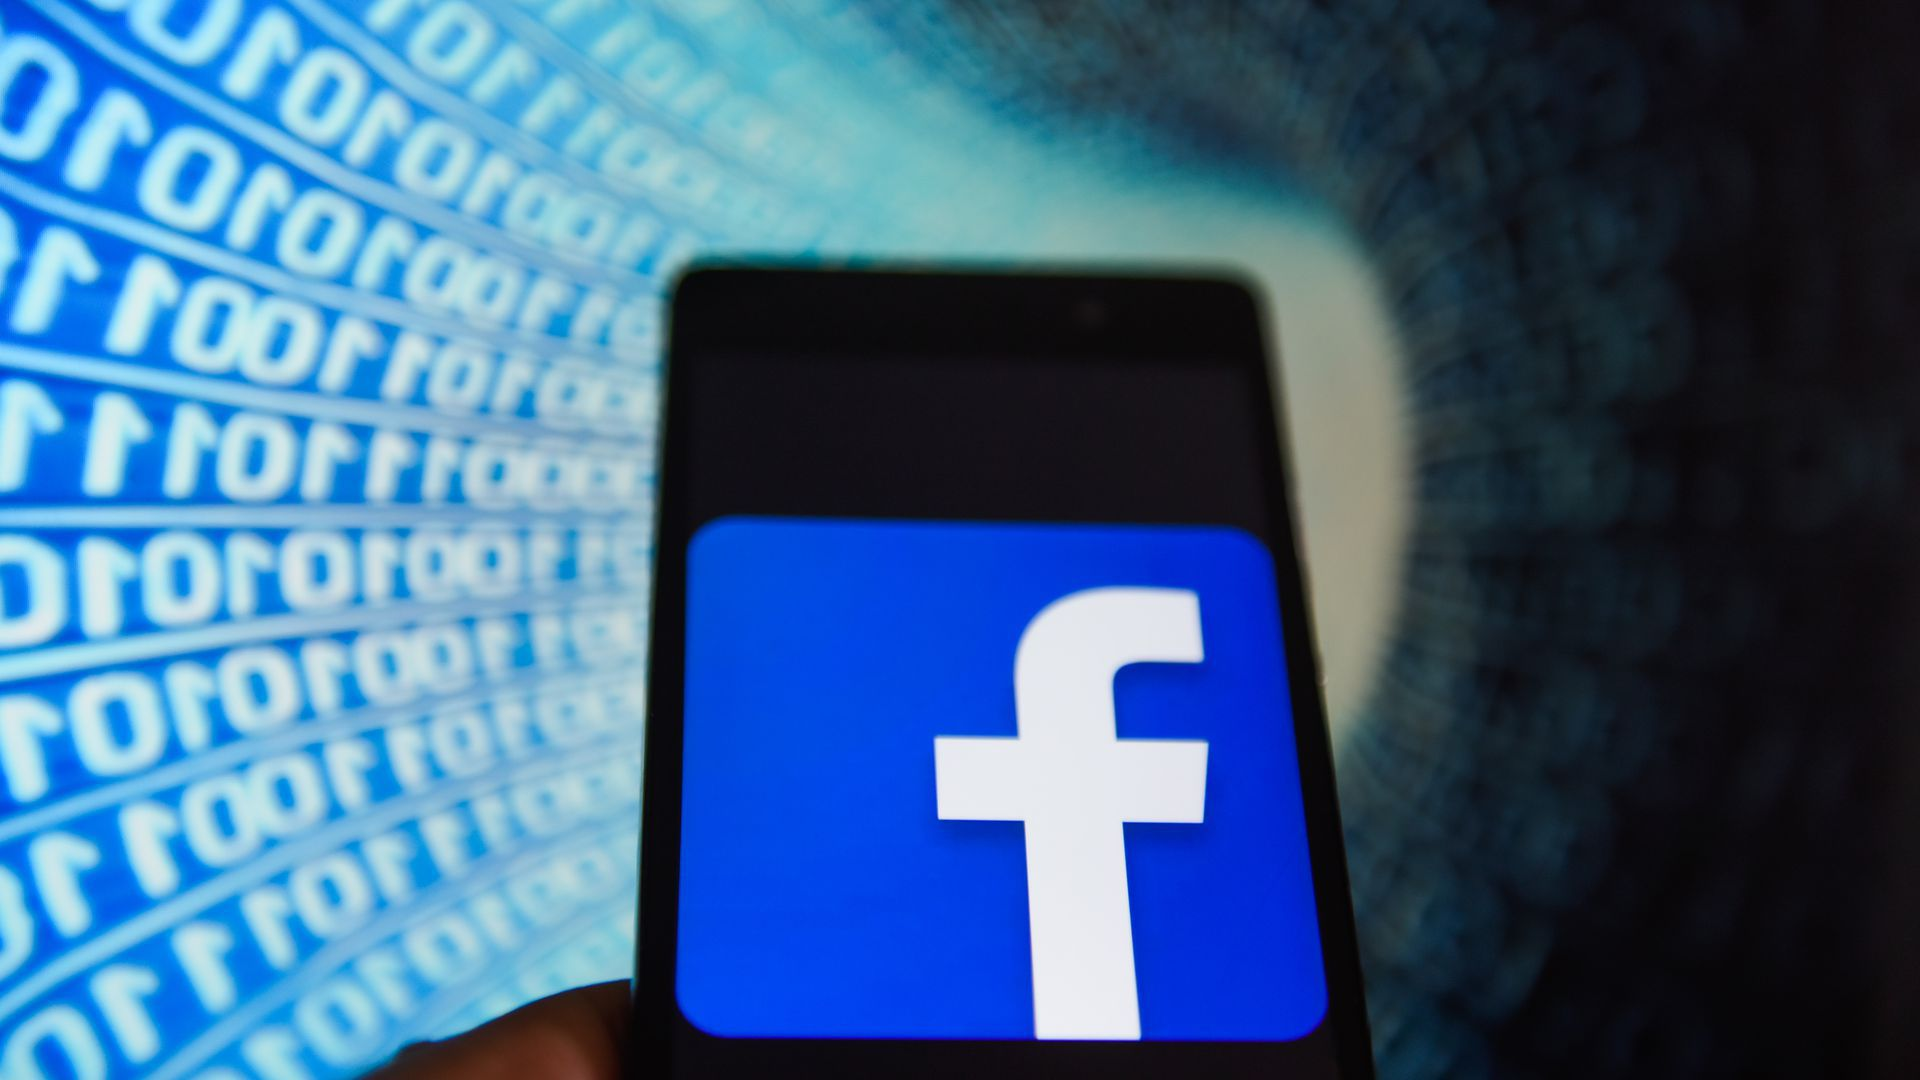 ACLU reaches settlement with Facebook over discriminatory ads